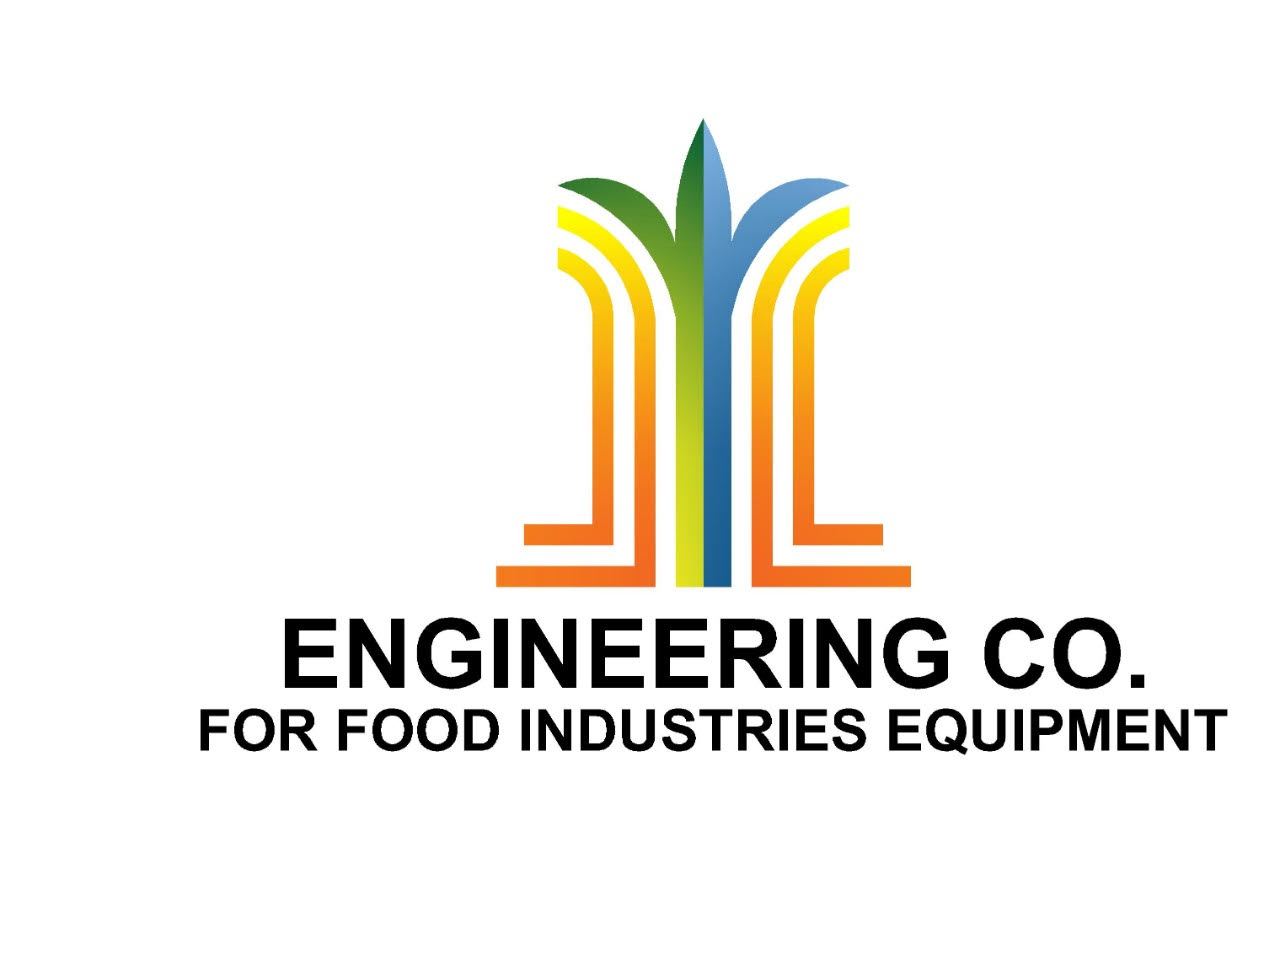 Engineering Co. for Food Industries Equipment